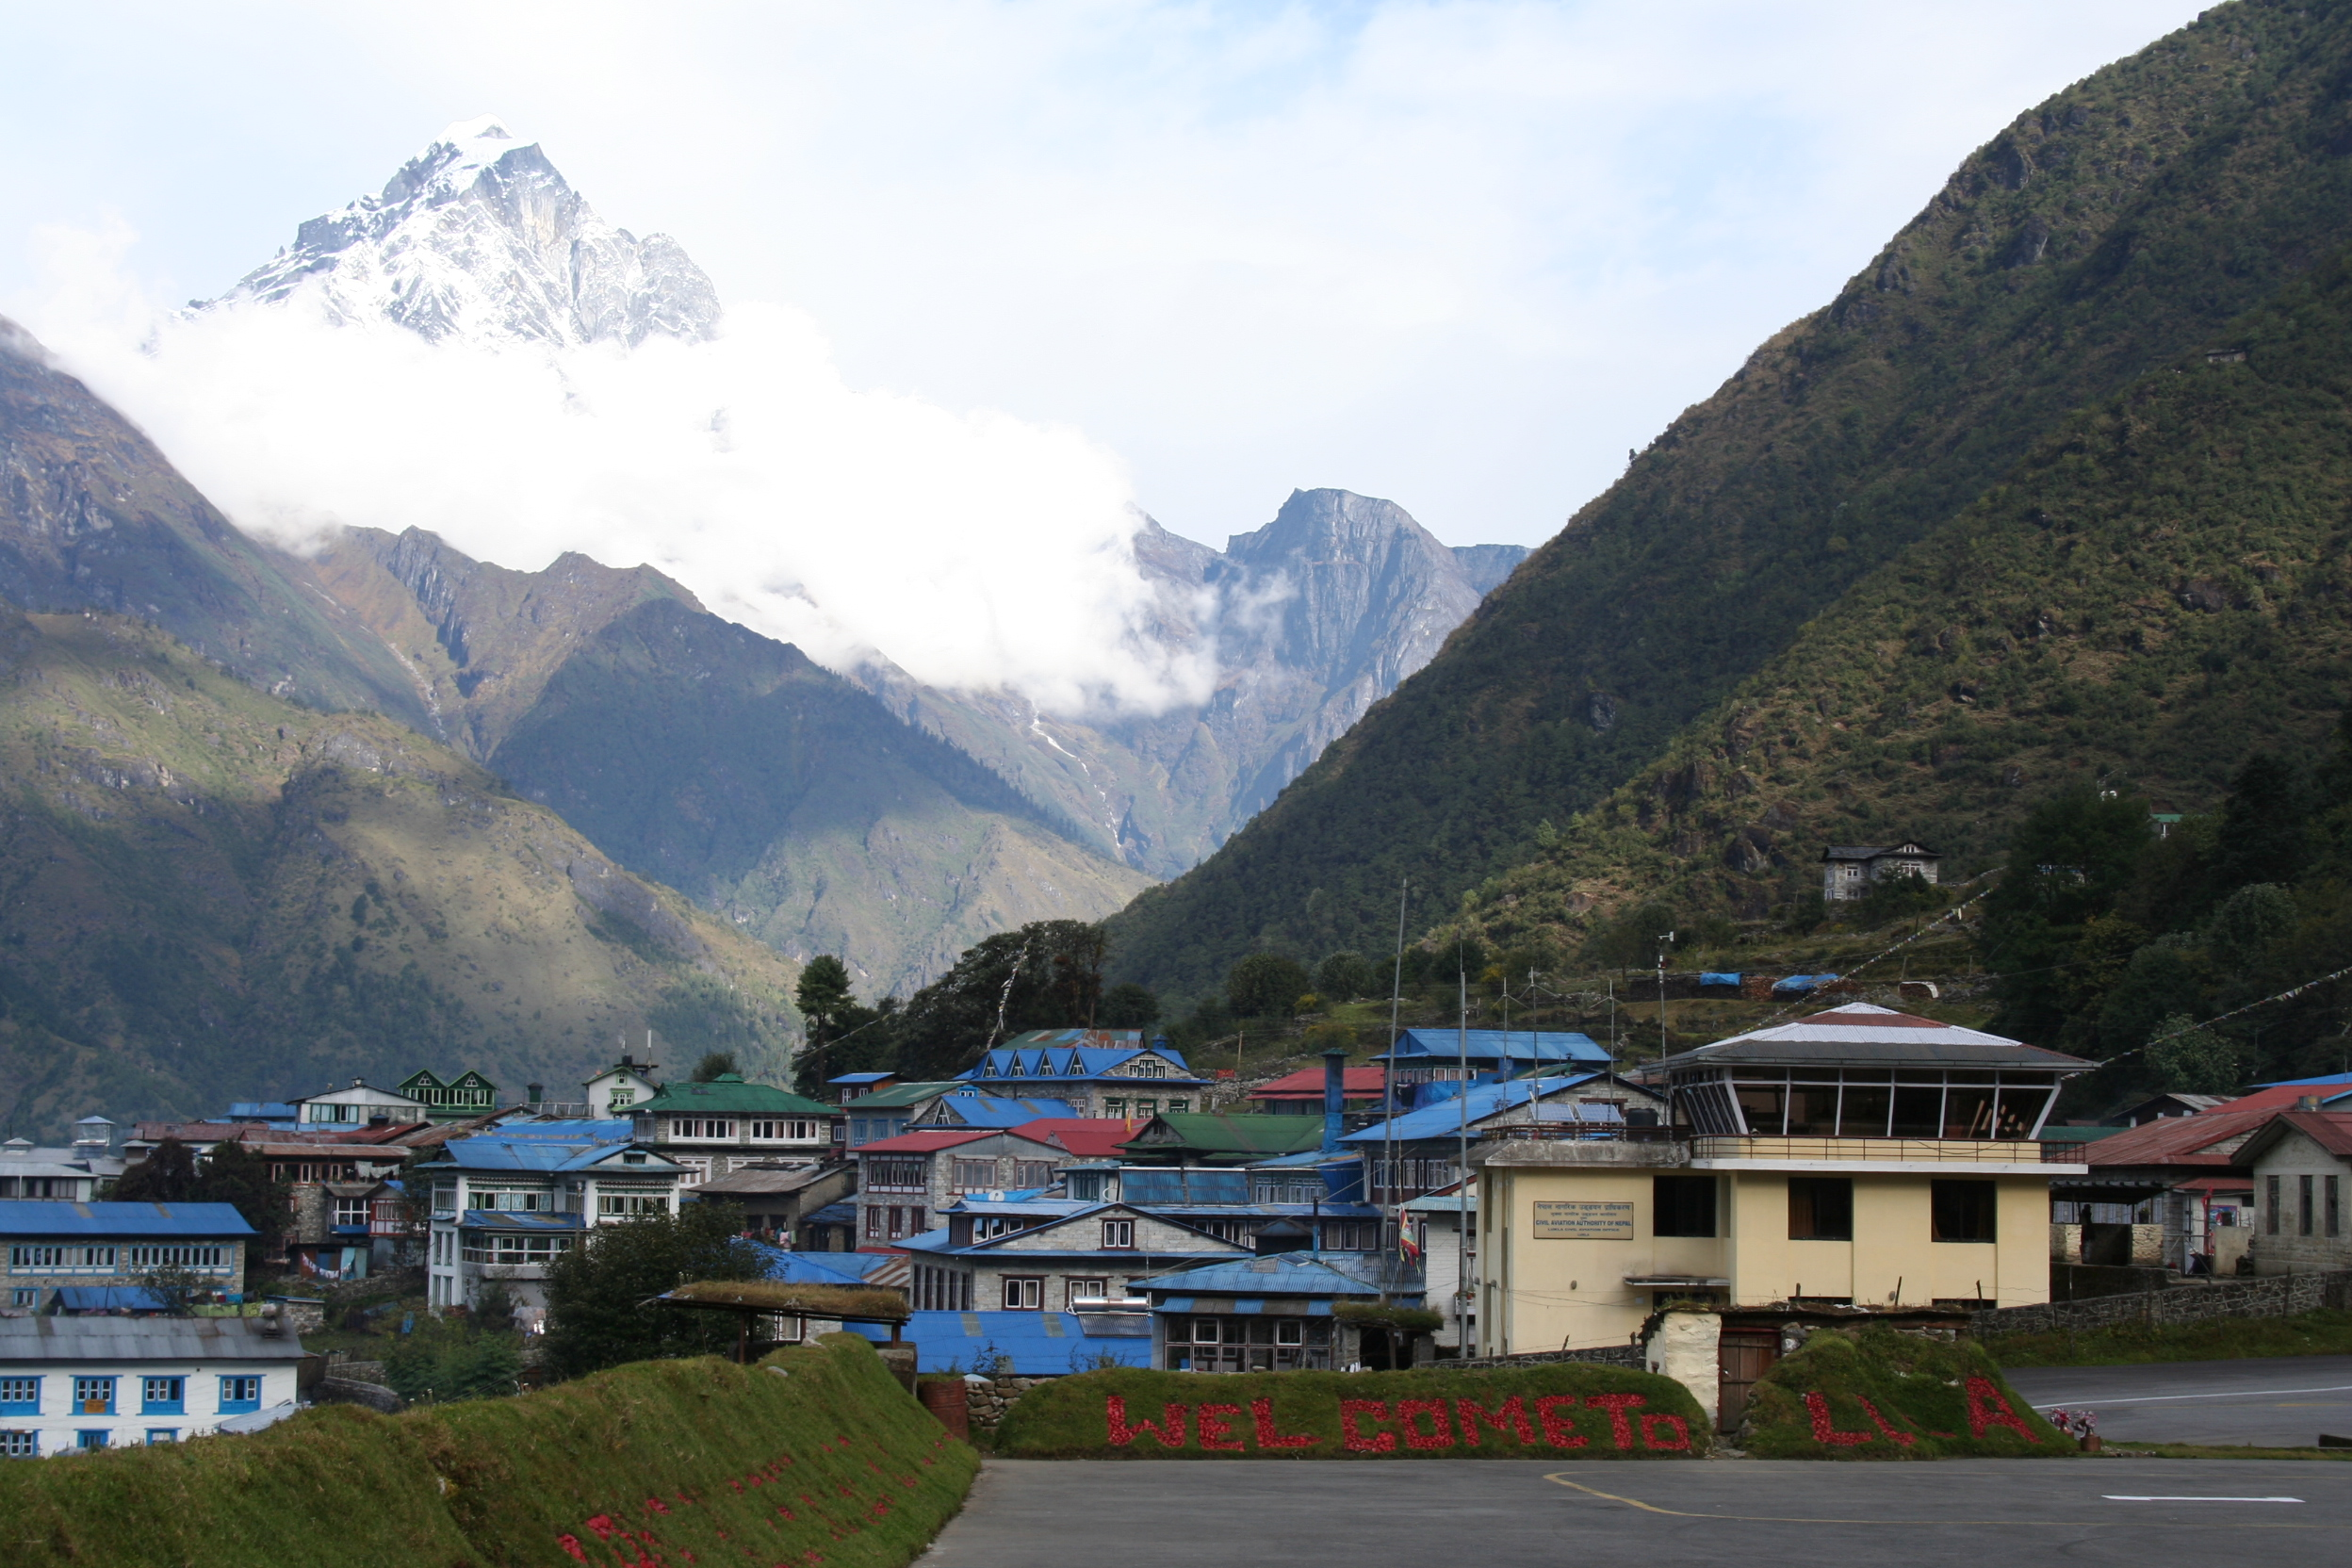 This list omits Sleep Killer #11: terror at the take-off/landing. This is Lukla airport, Nepal and the runway is very short and the drop-off very steep!